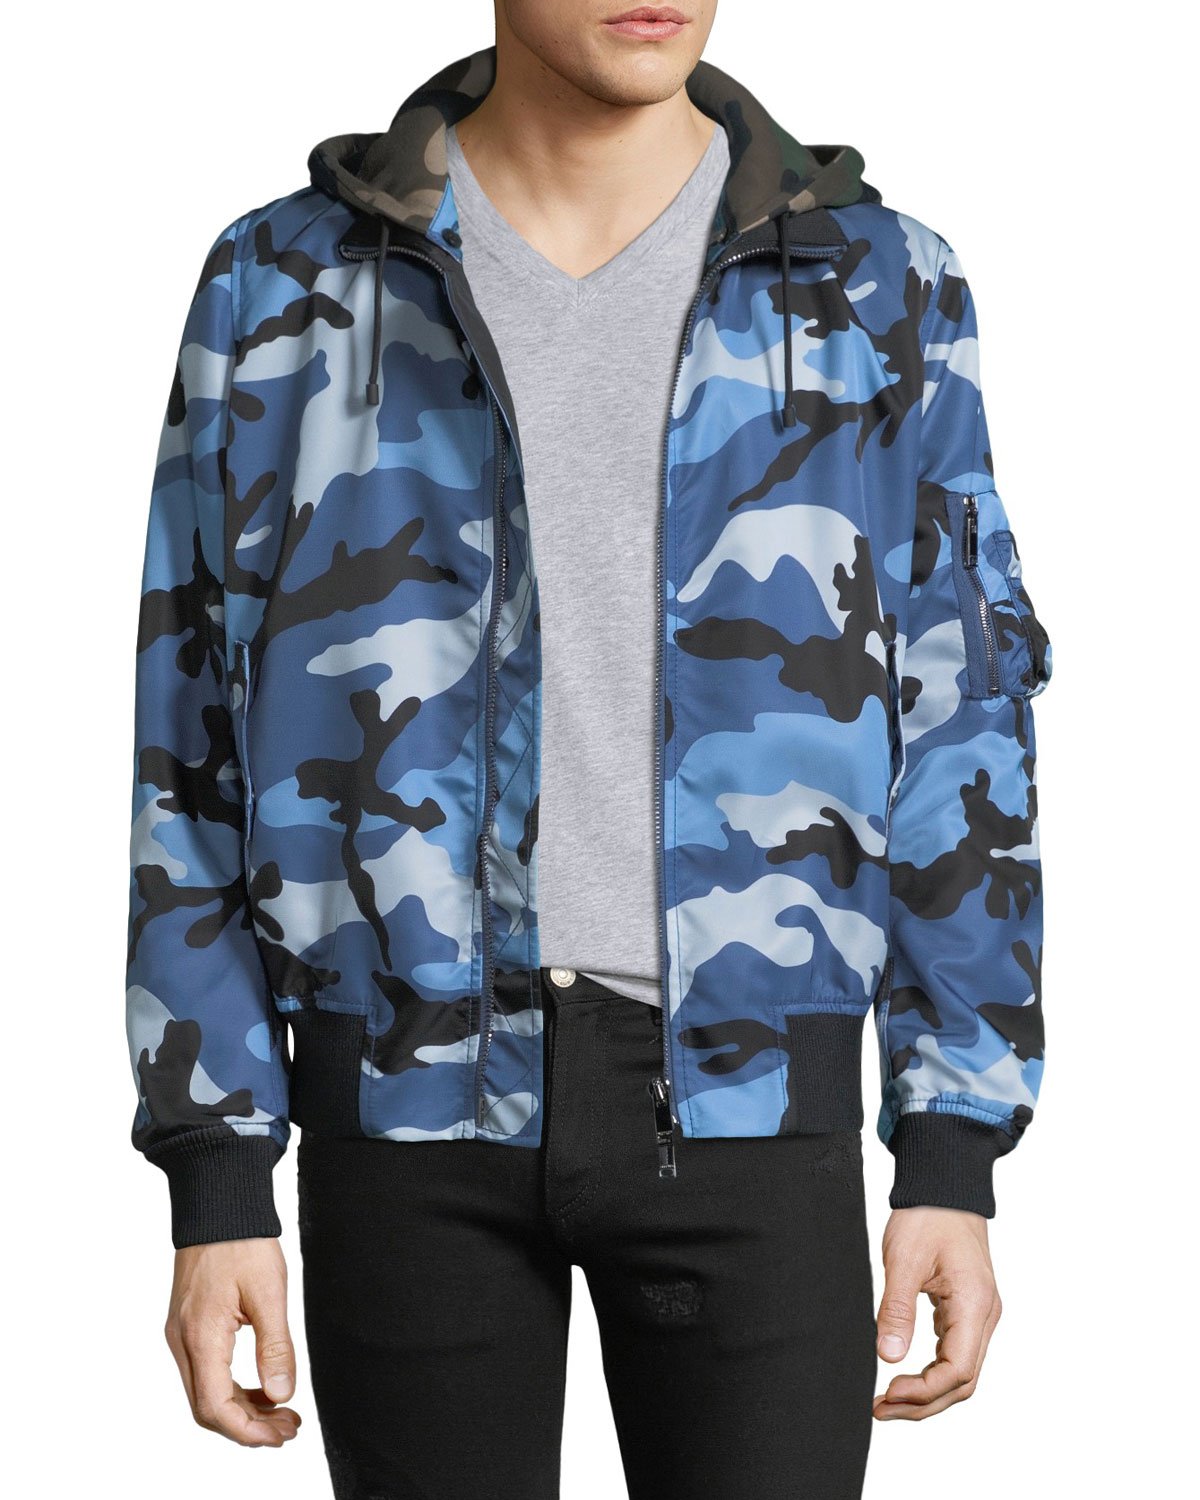 77a8257924e80 Valentino Men's Oversized Camo-Print Bomber Jacket with Removable Hood